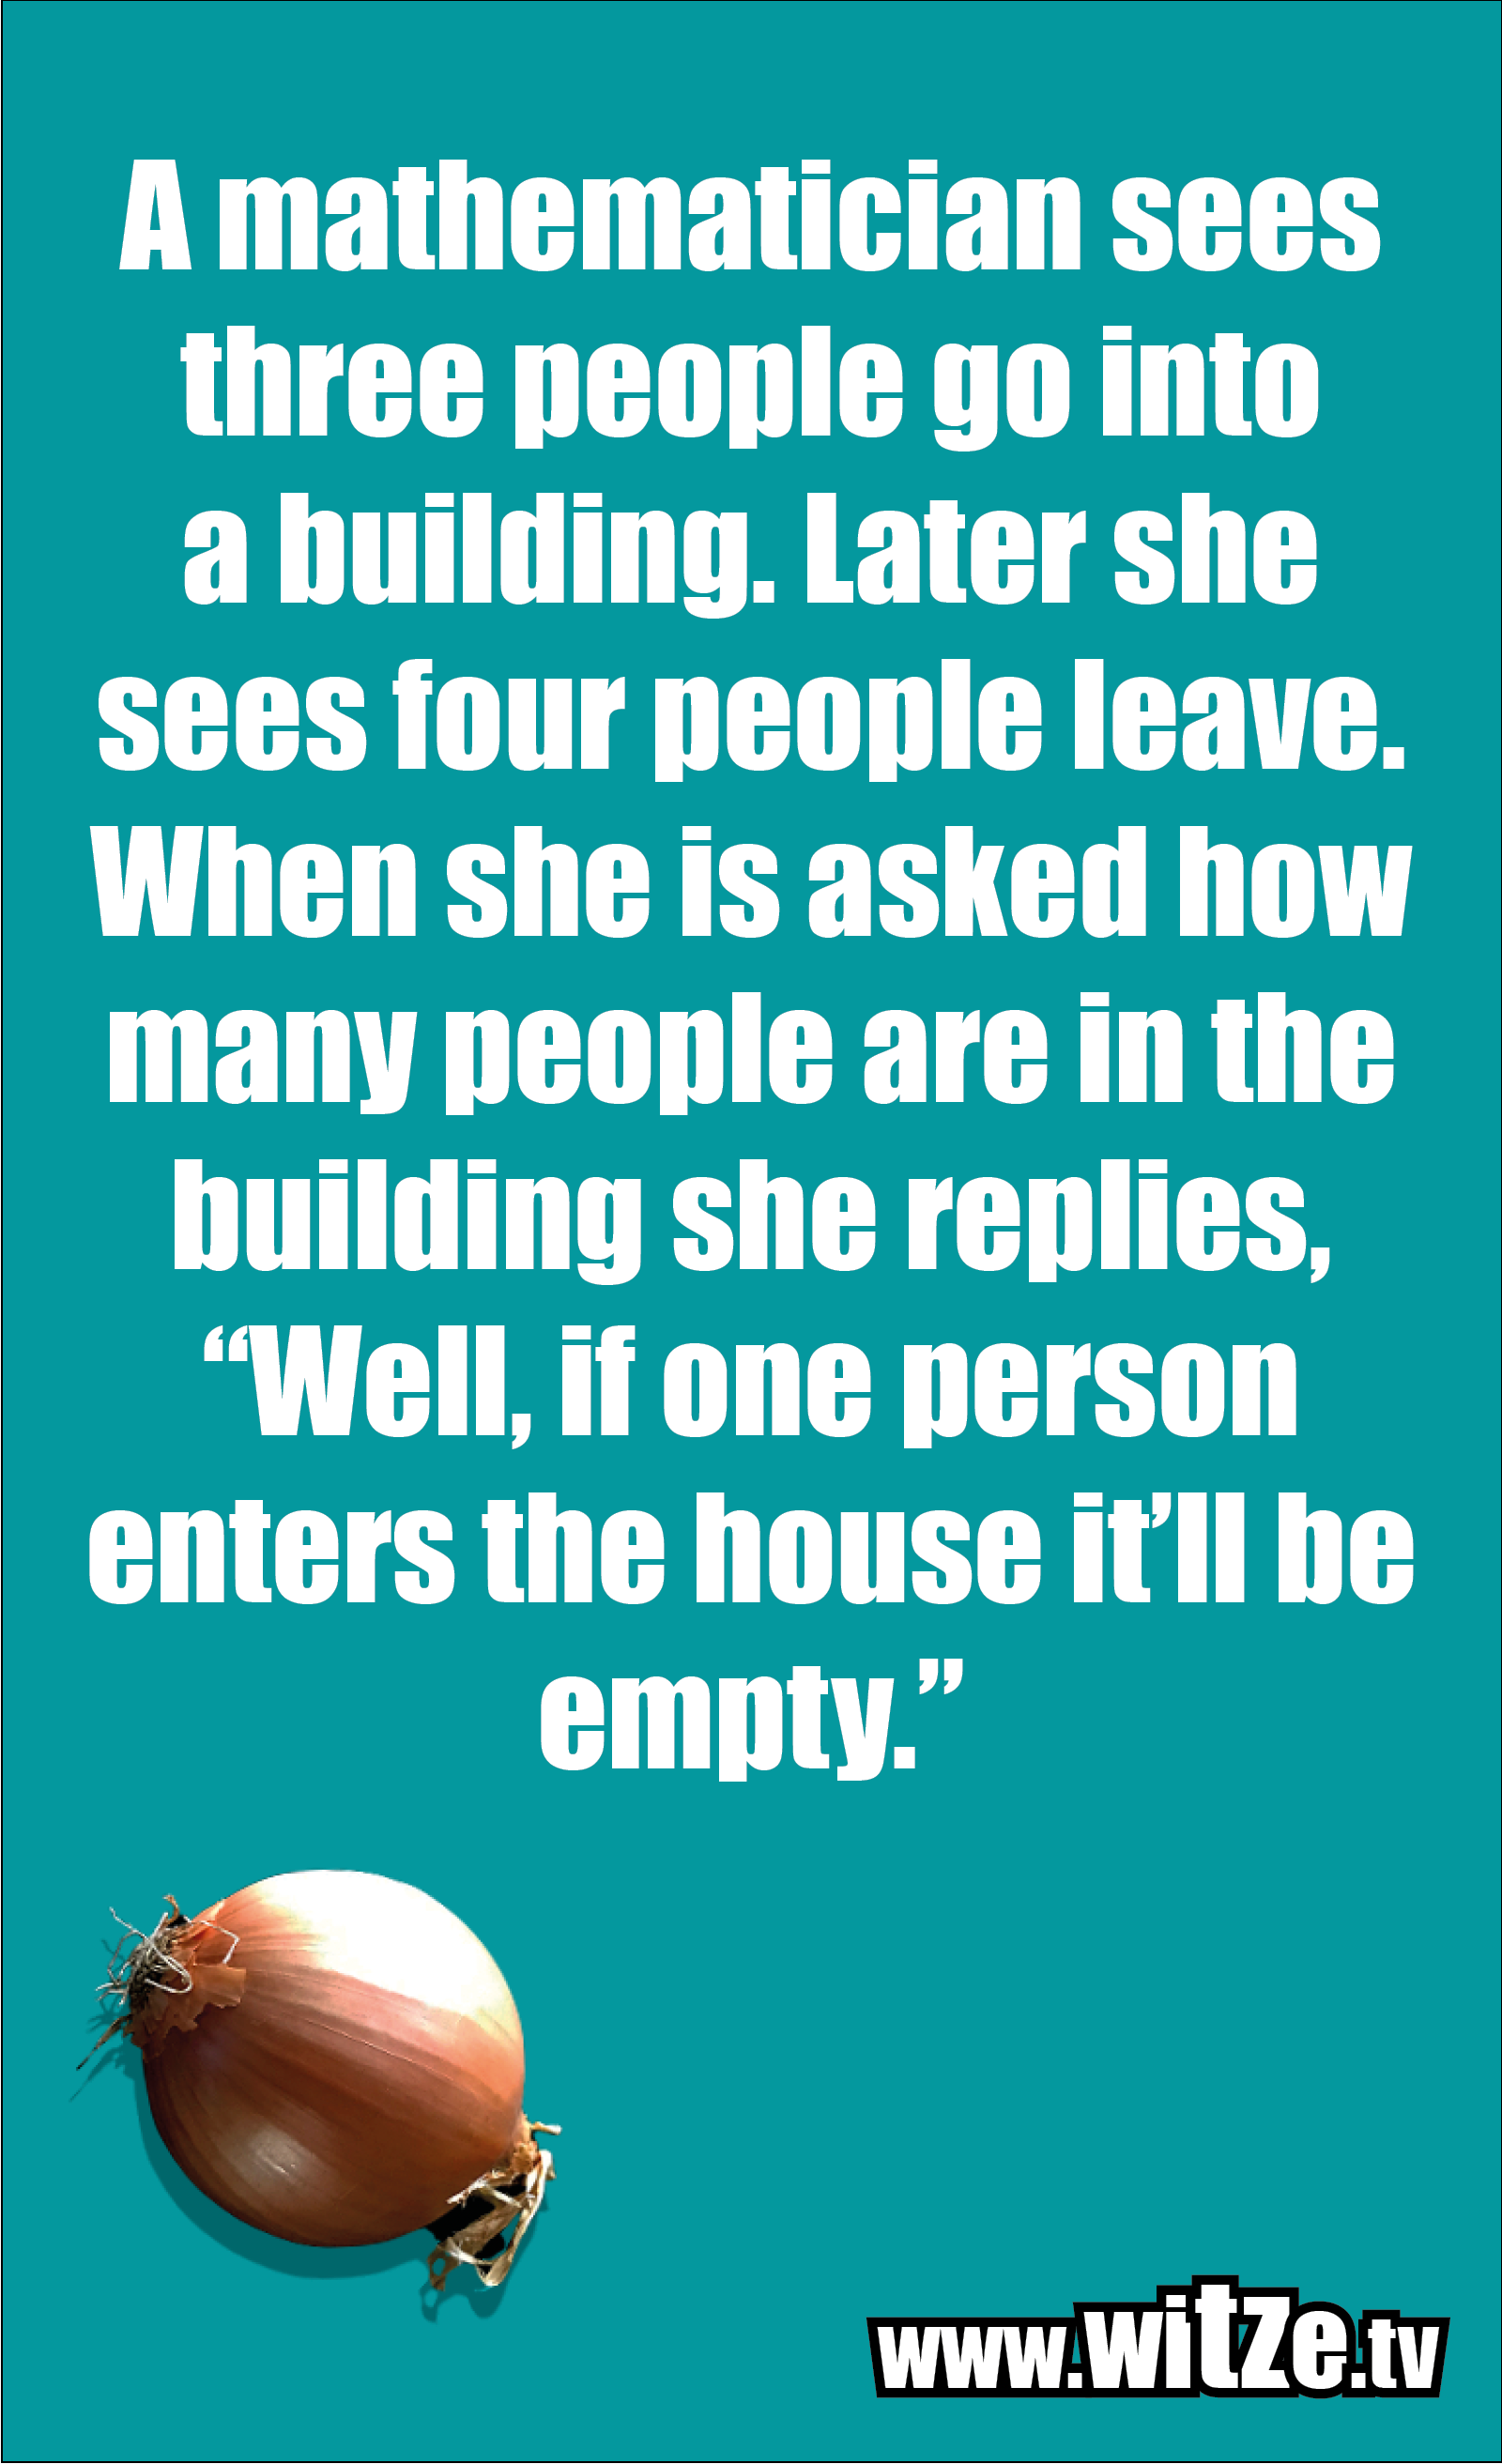 """Math joke… A mathematician sees three people go into a building. Later she sees four people leave. When she is asked how many people are in the building she replies, """"Well, if one person enters the house it'll be empty."""""""